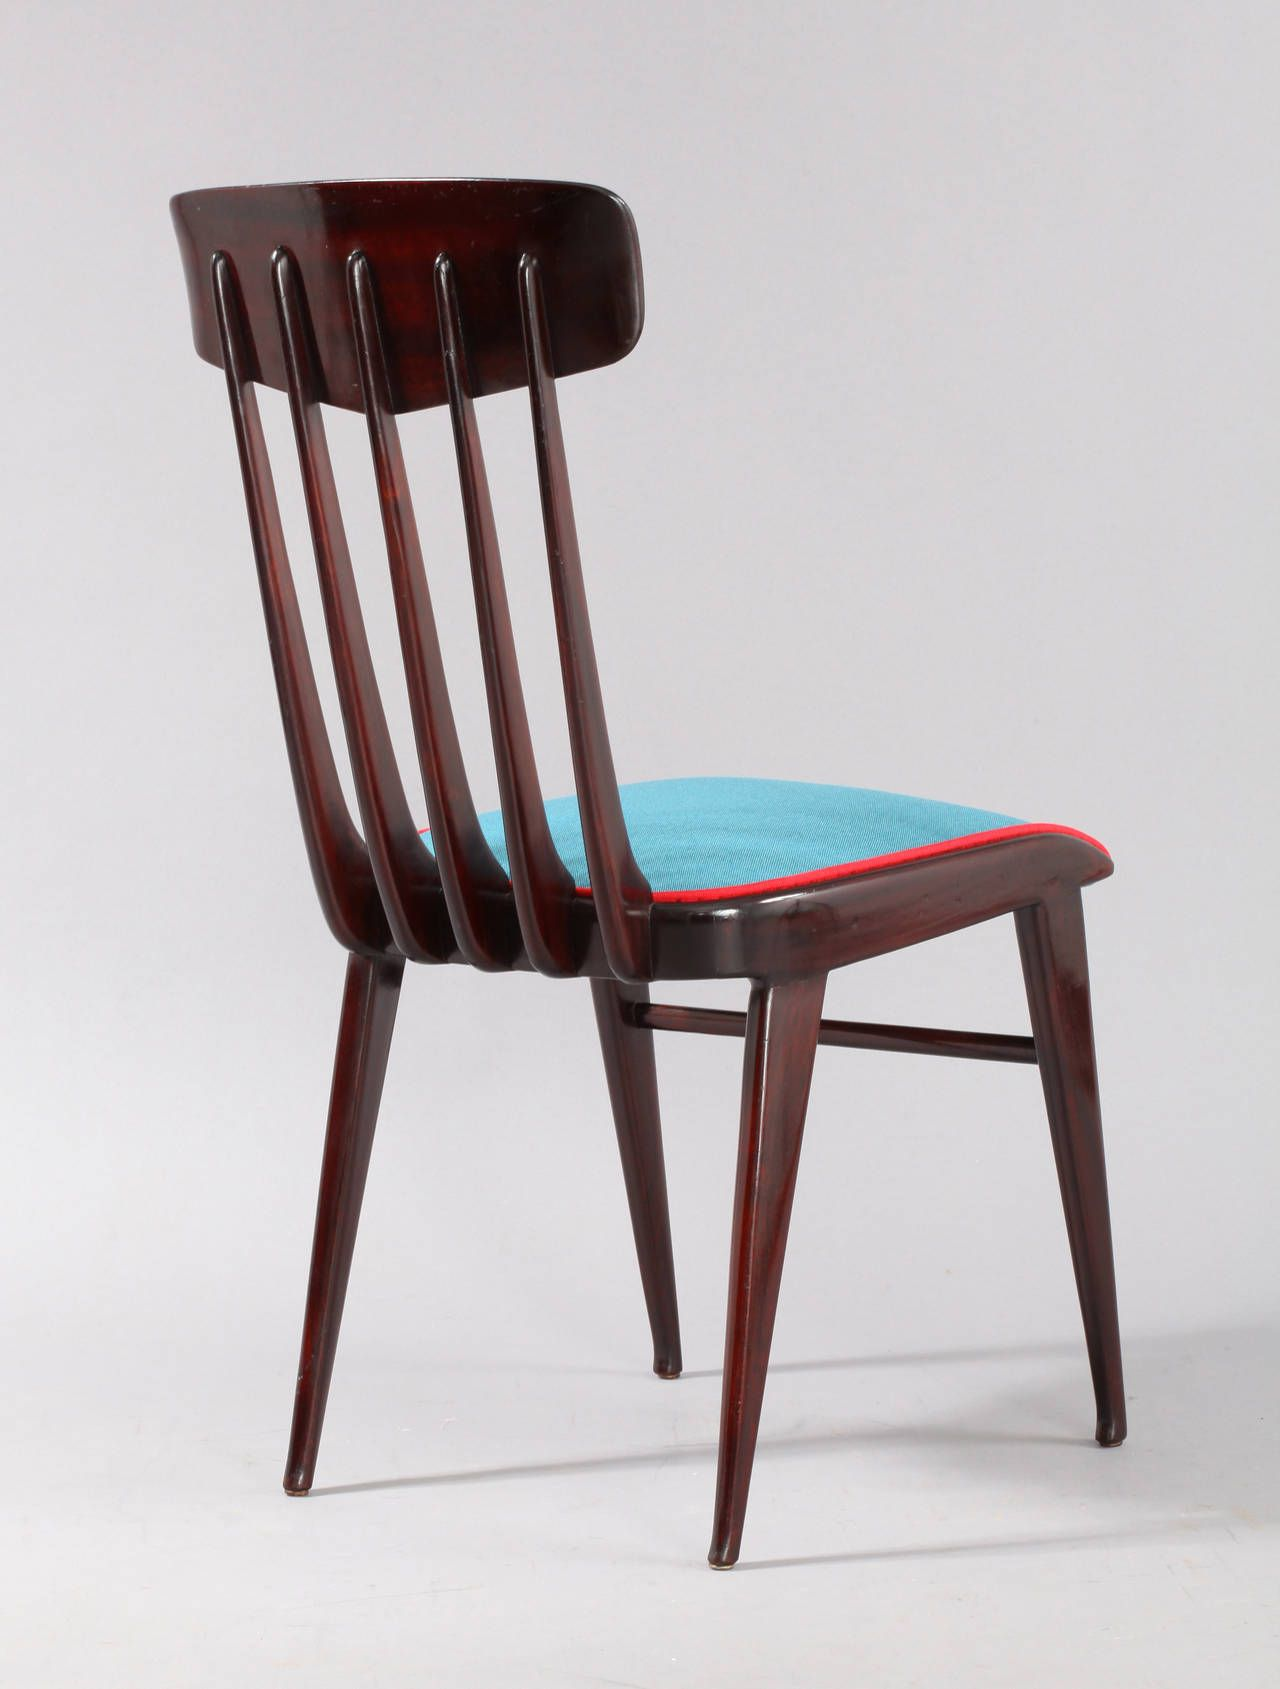 Charming Six Dining Chairs Attributed To Gio Ponti, Italy, 1950